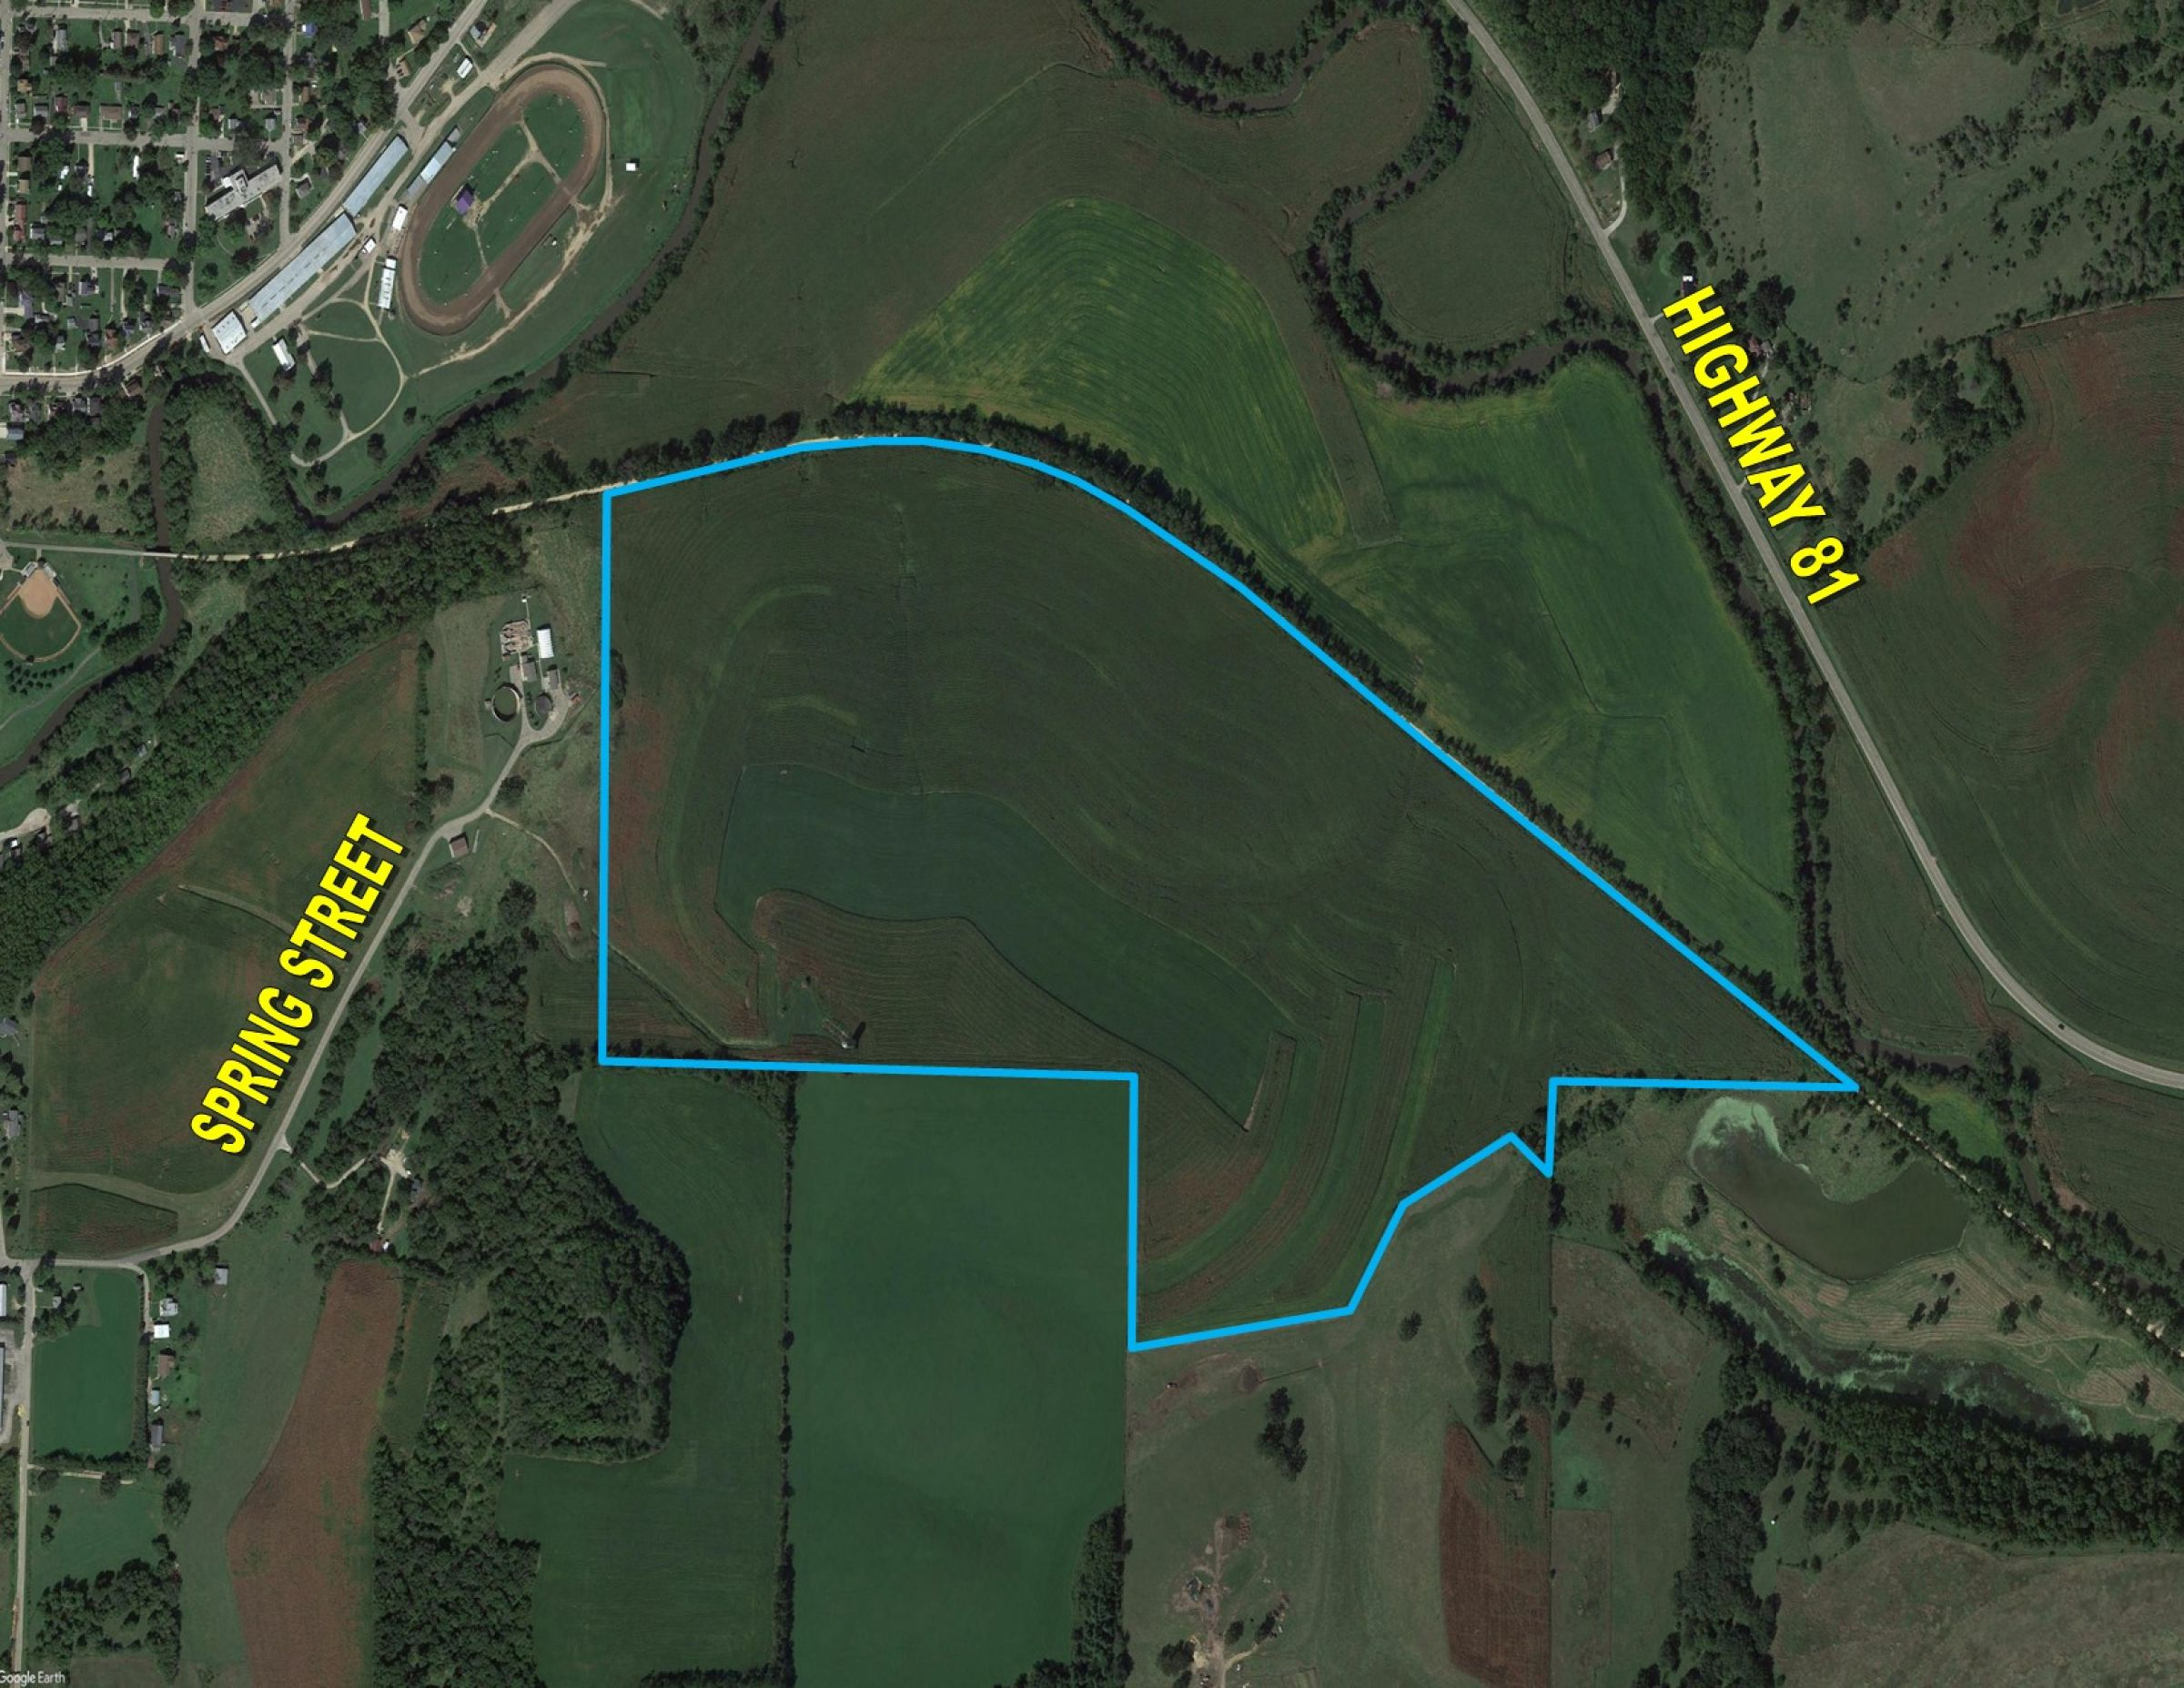 land-lafayette-county-wisconsin-120-acres-listing-number-15729-0-2021-09-07-014357.jpg